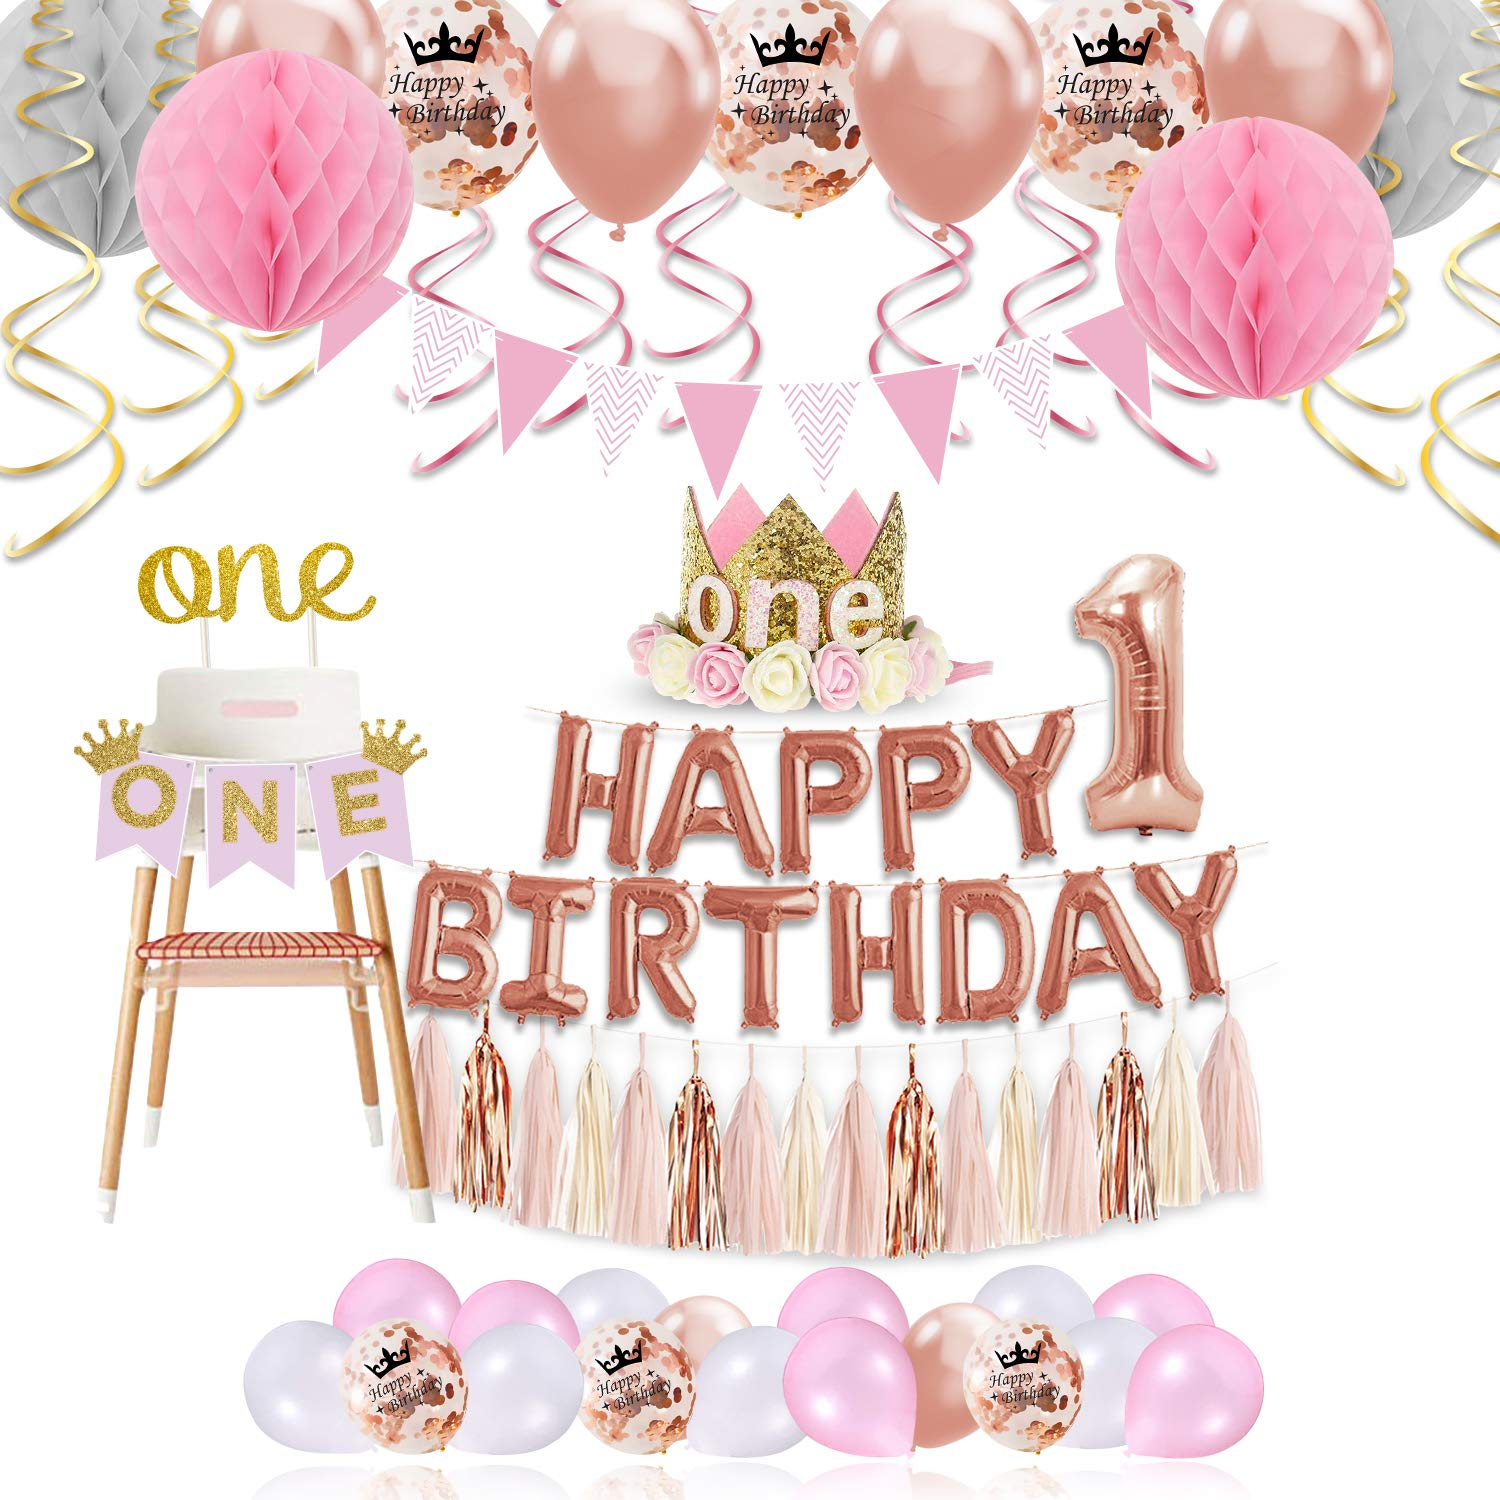 1st Birthday Girl Decorations Princess Theme - 85 Piece First Birthday Decorations Girl Kit Pink/White/Rose Gold. ONE Cake Topper, First Birthday Highchair Banner, Crown, Balloons